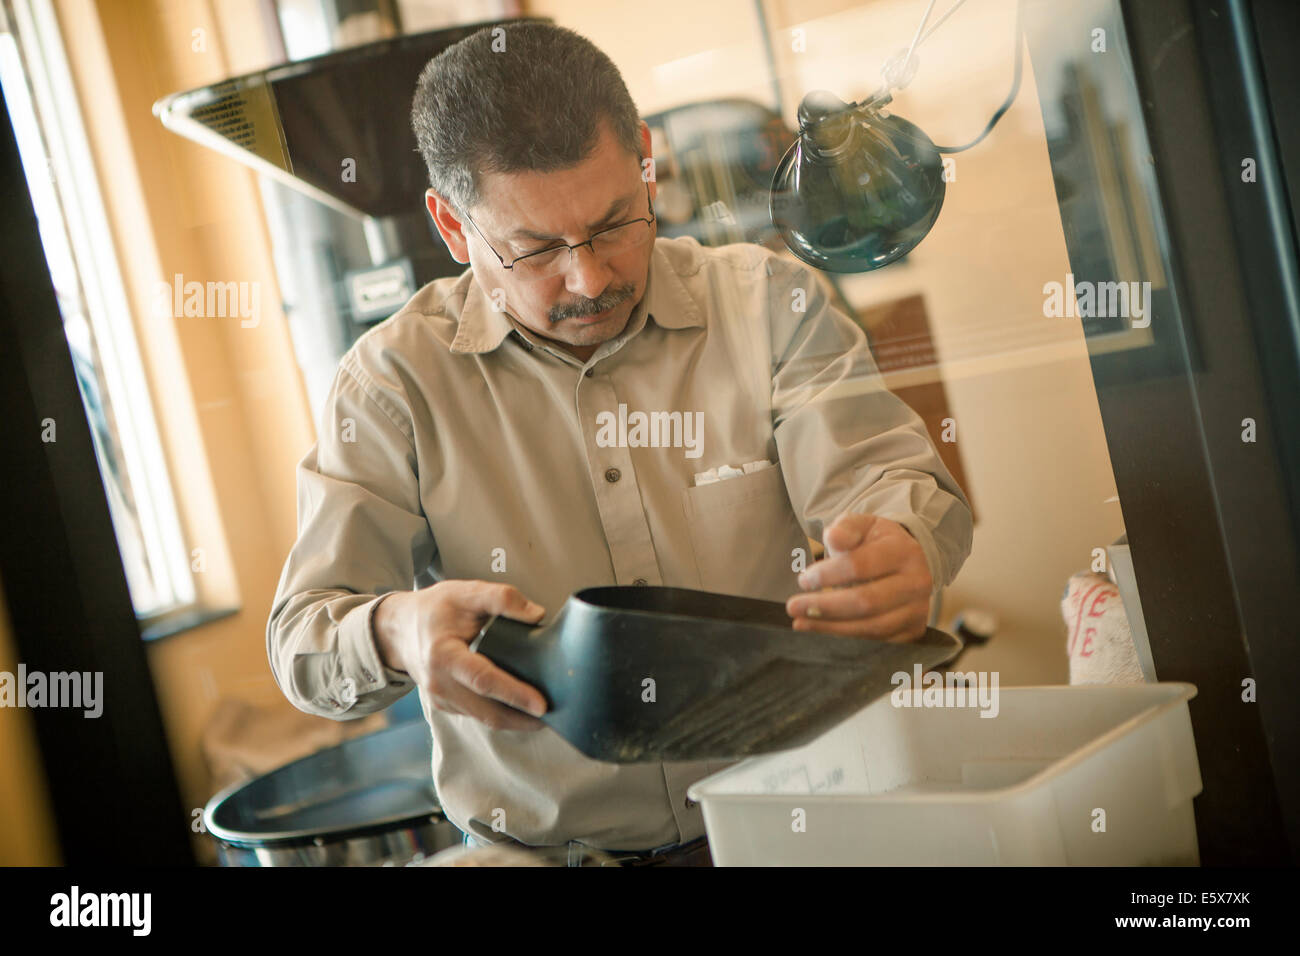 Mature man using coffee bean scoop for coffee roasting machine in cafe - Stock Image